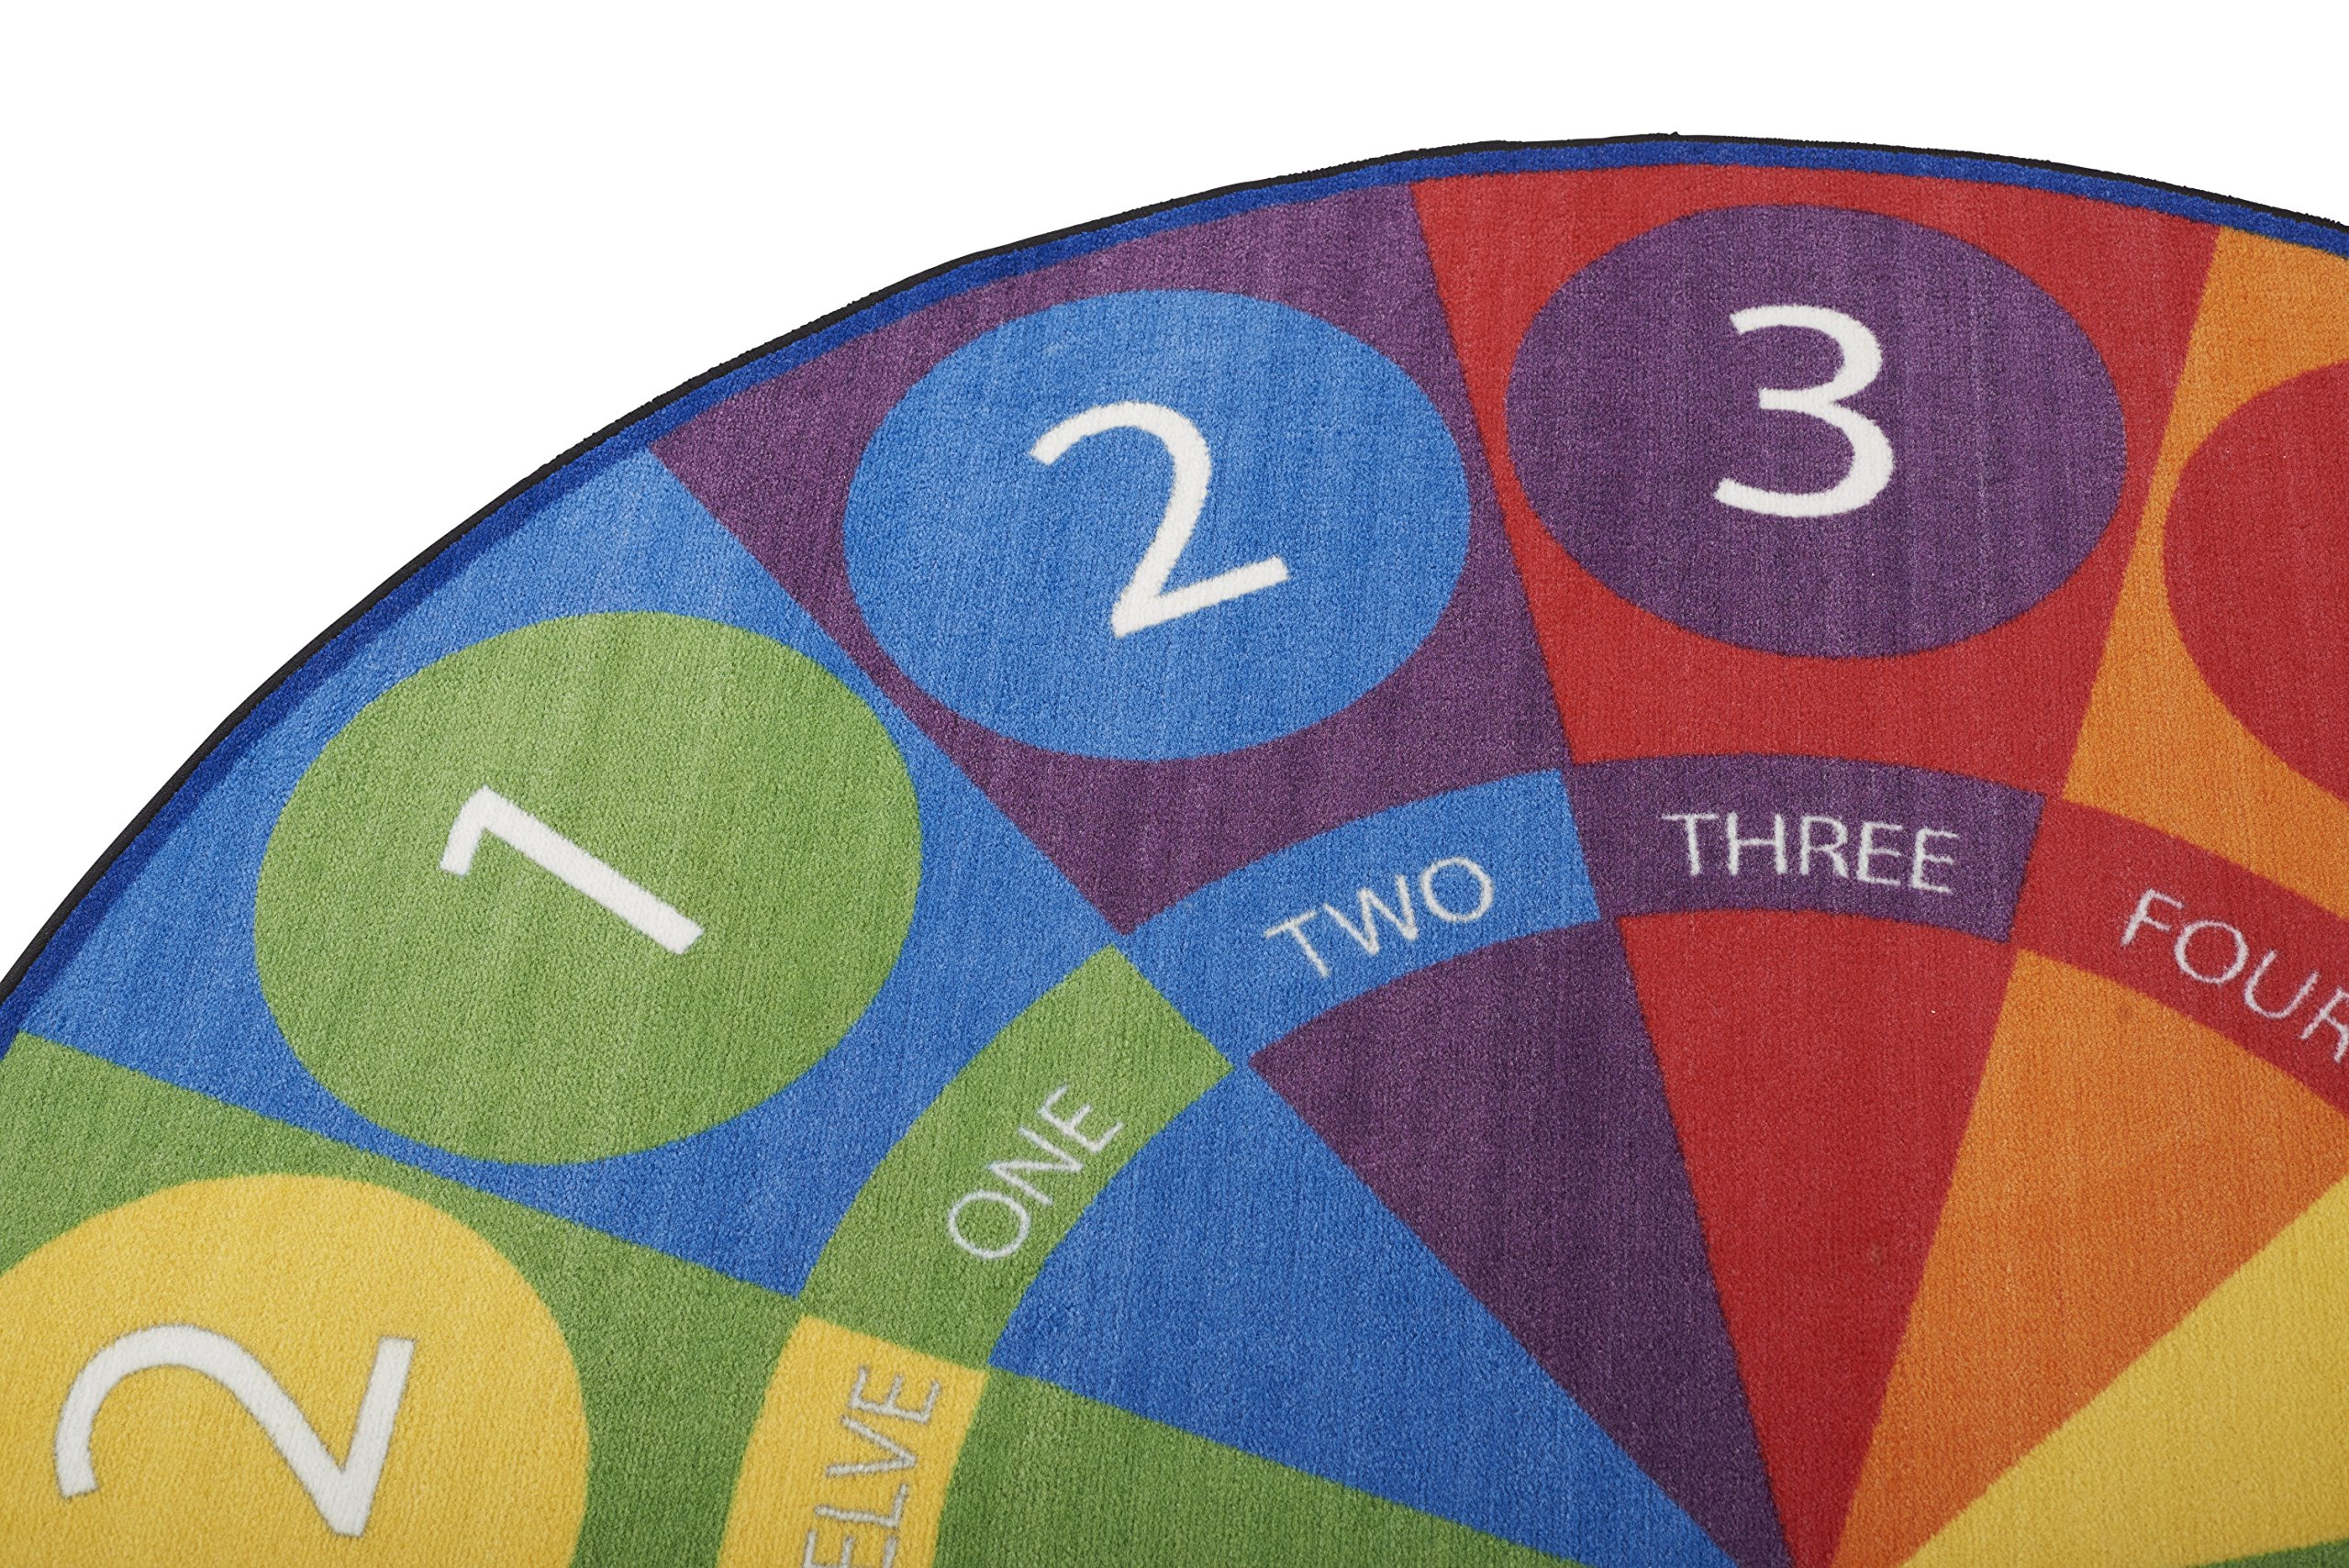 ECR4Kids Tick-Tock Clock Educational Circle Activity Rug for Children, School Classroom Learning Carpet, Round by ECR4Kids (Image #5)